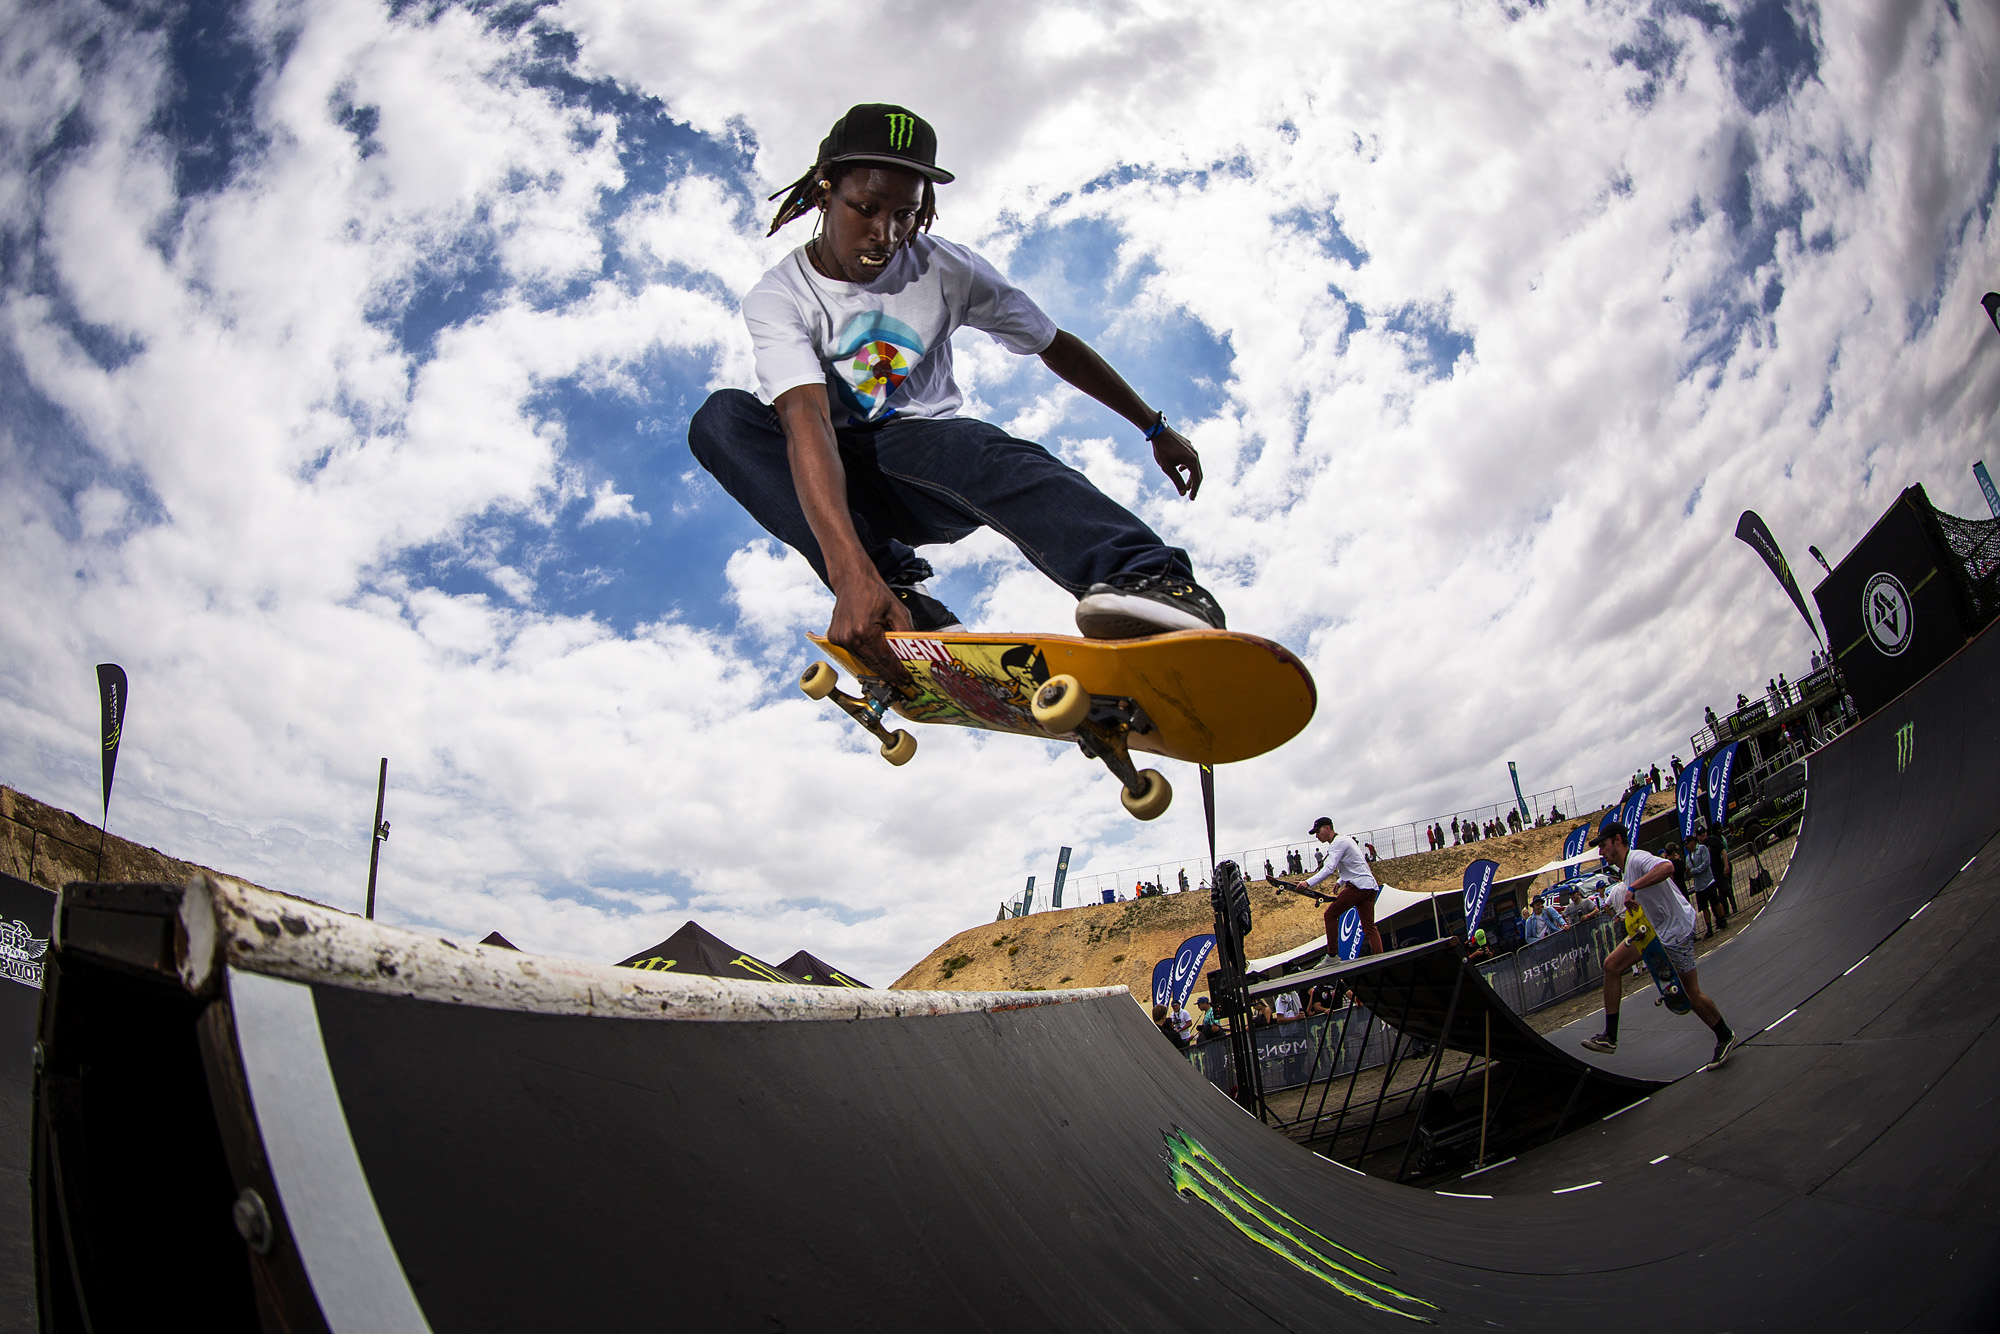 Khule Ngubane skateboarding his way to 2nd place at stop 2 of the Ramp Rodeo